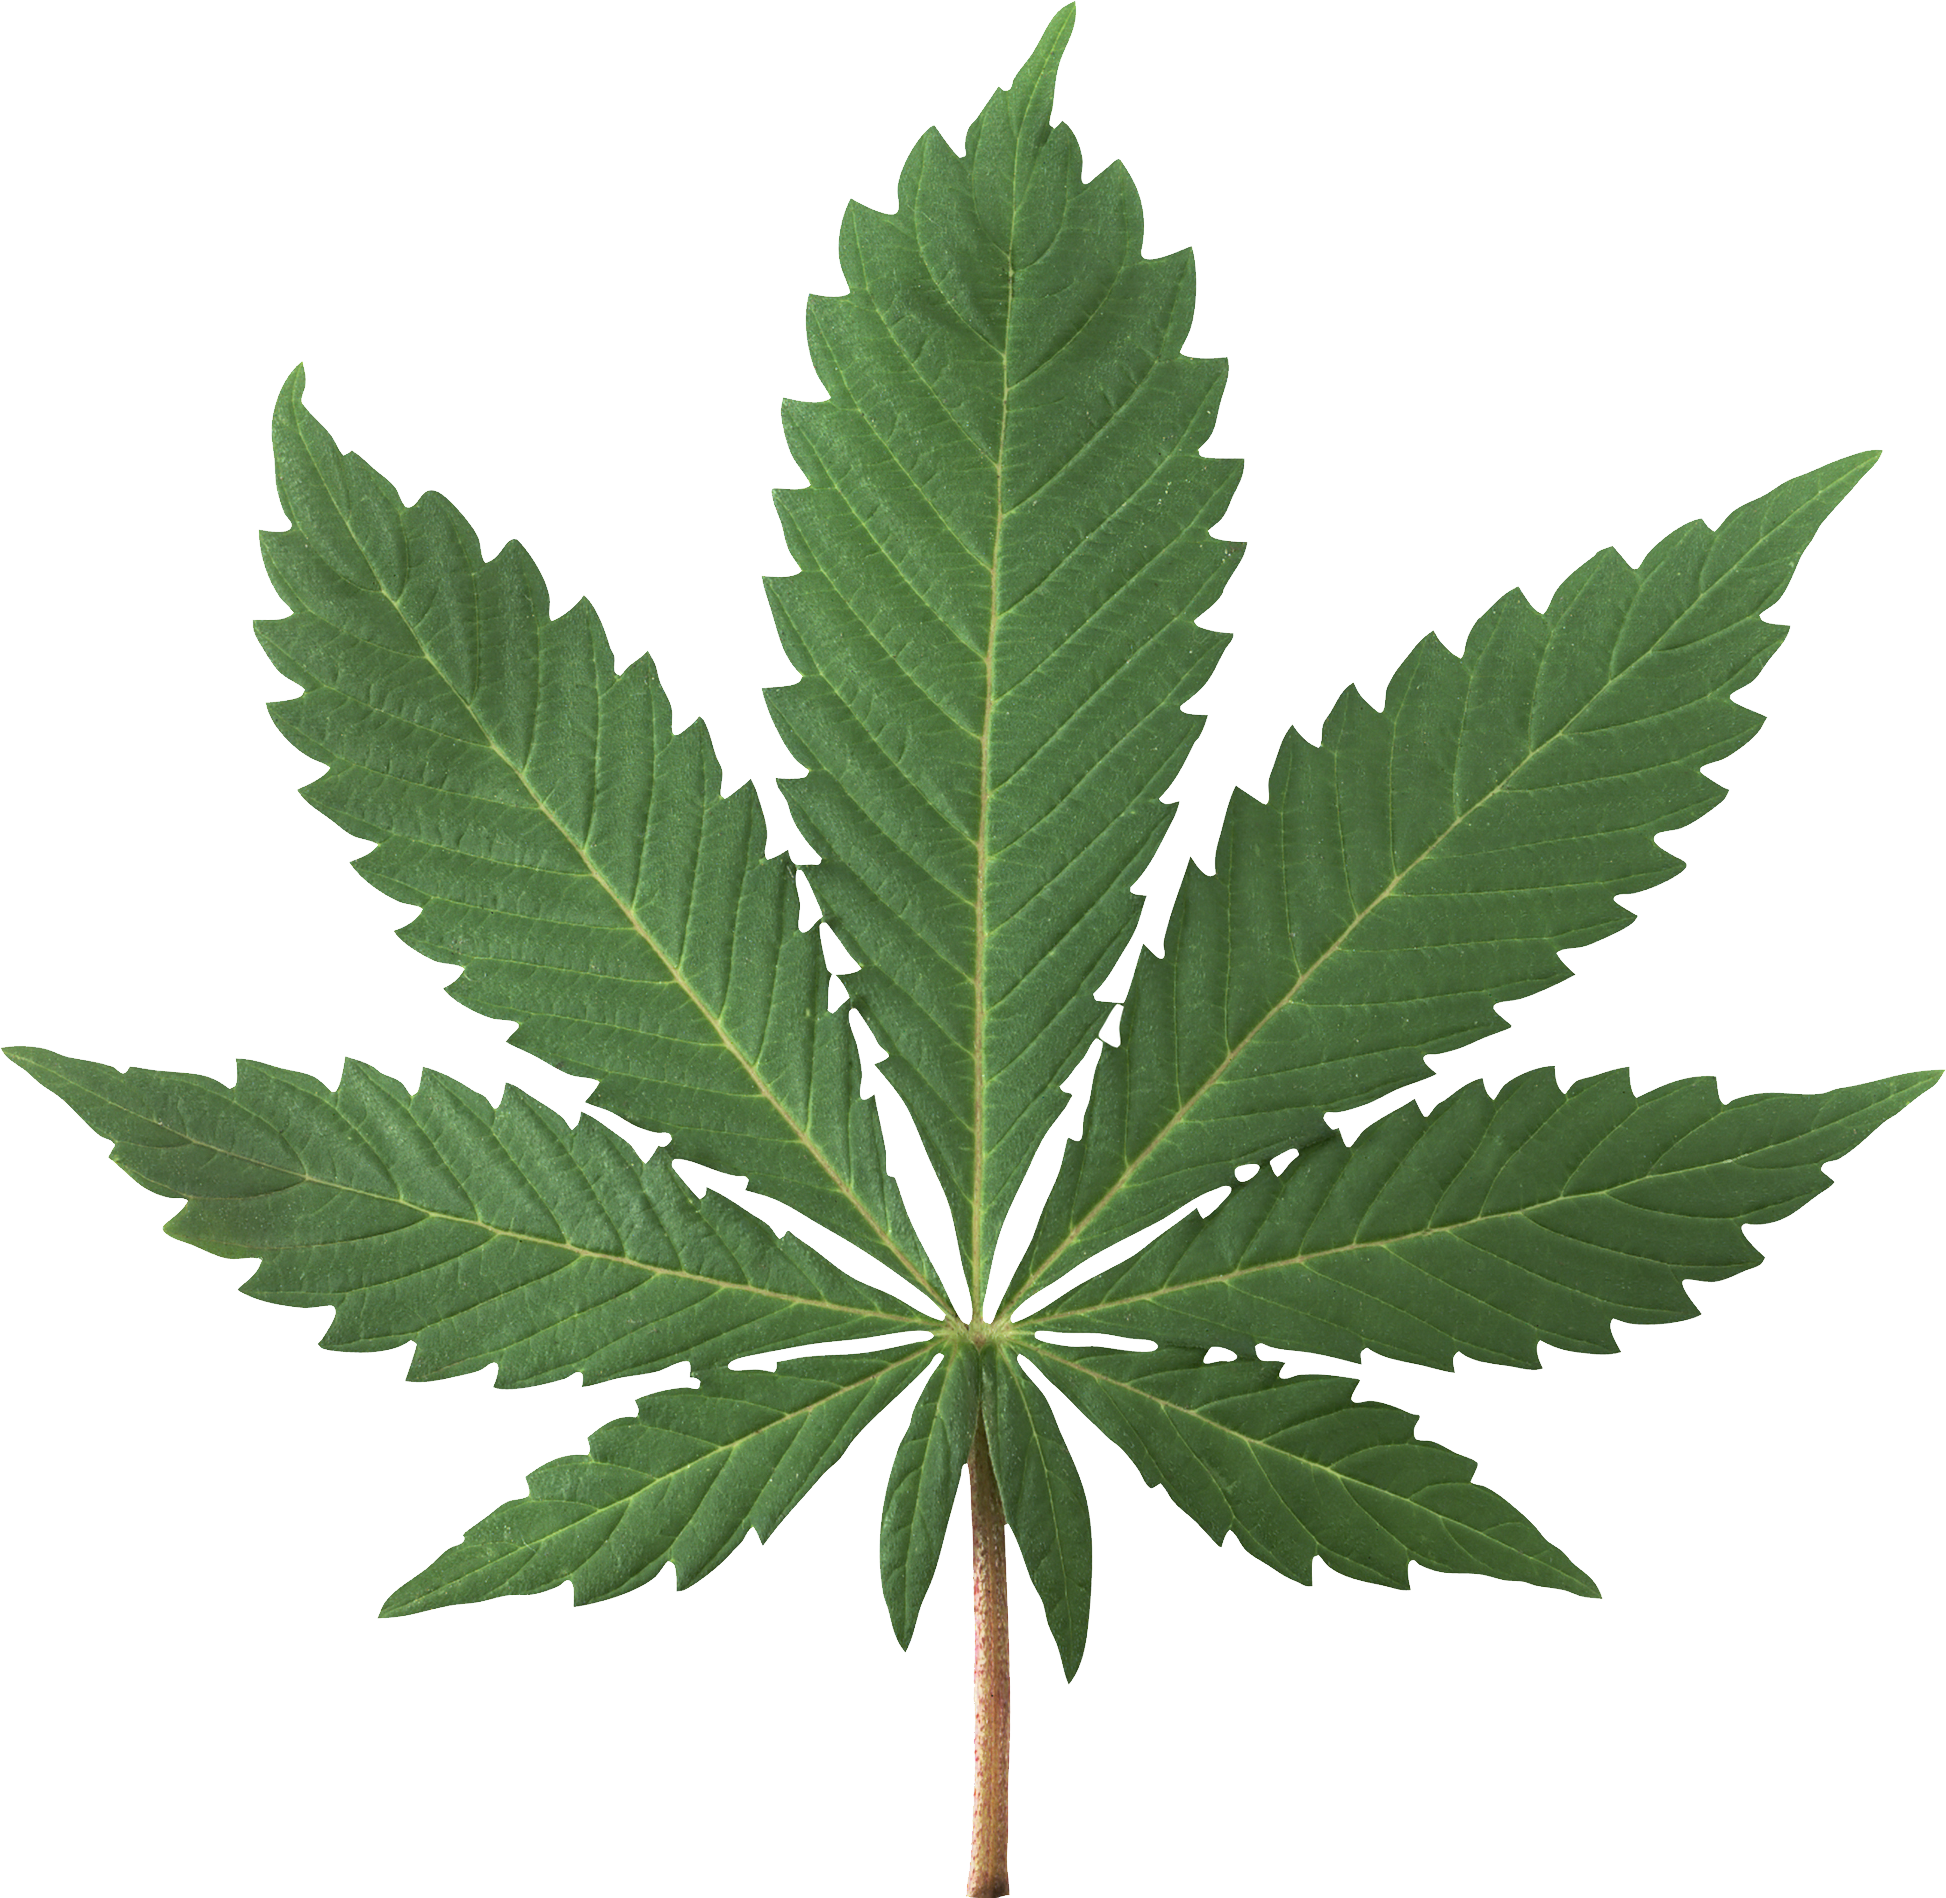 Cannabis flower png. Images free download